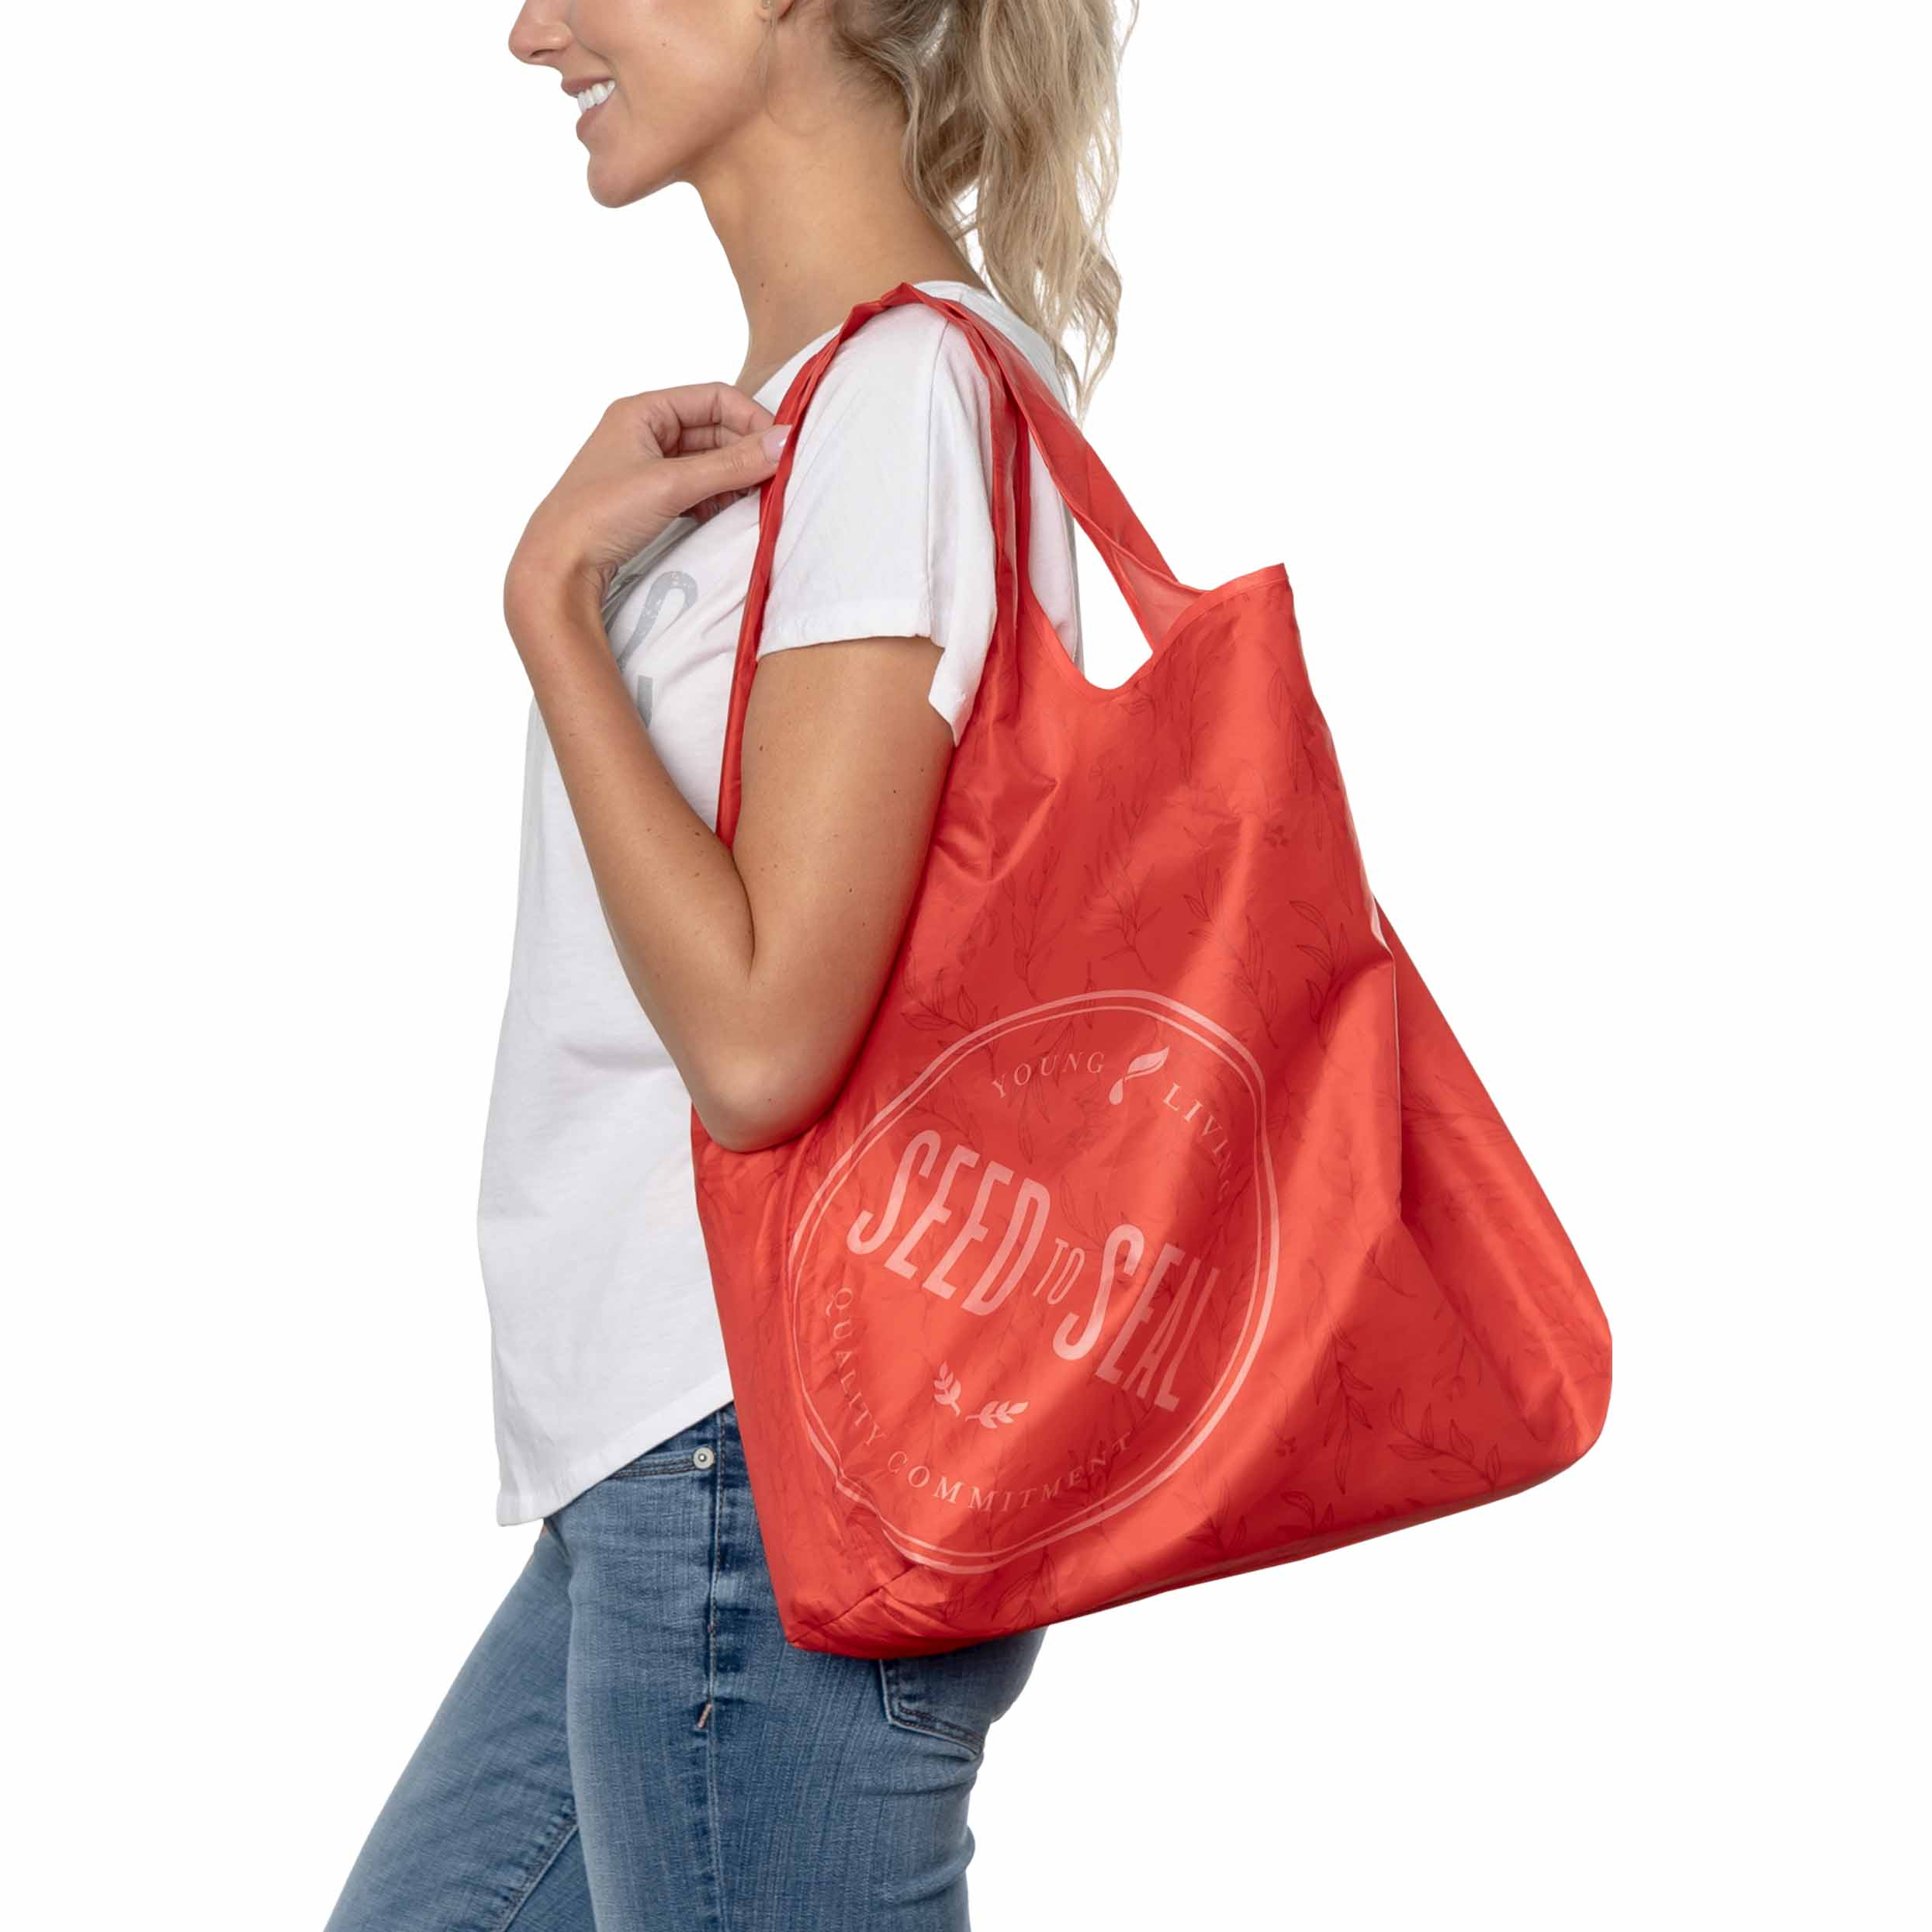 Packable Shopping Tote